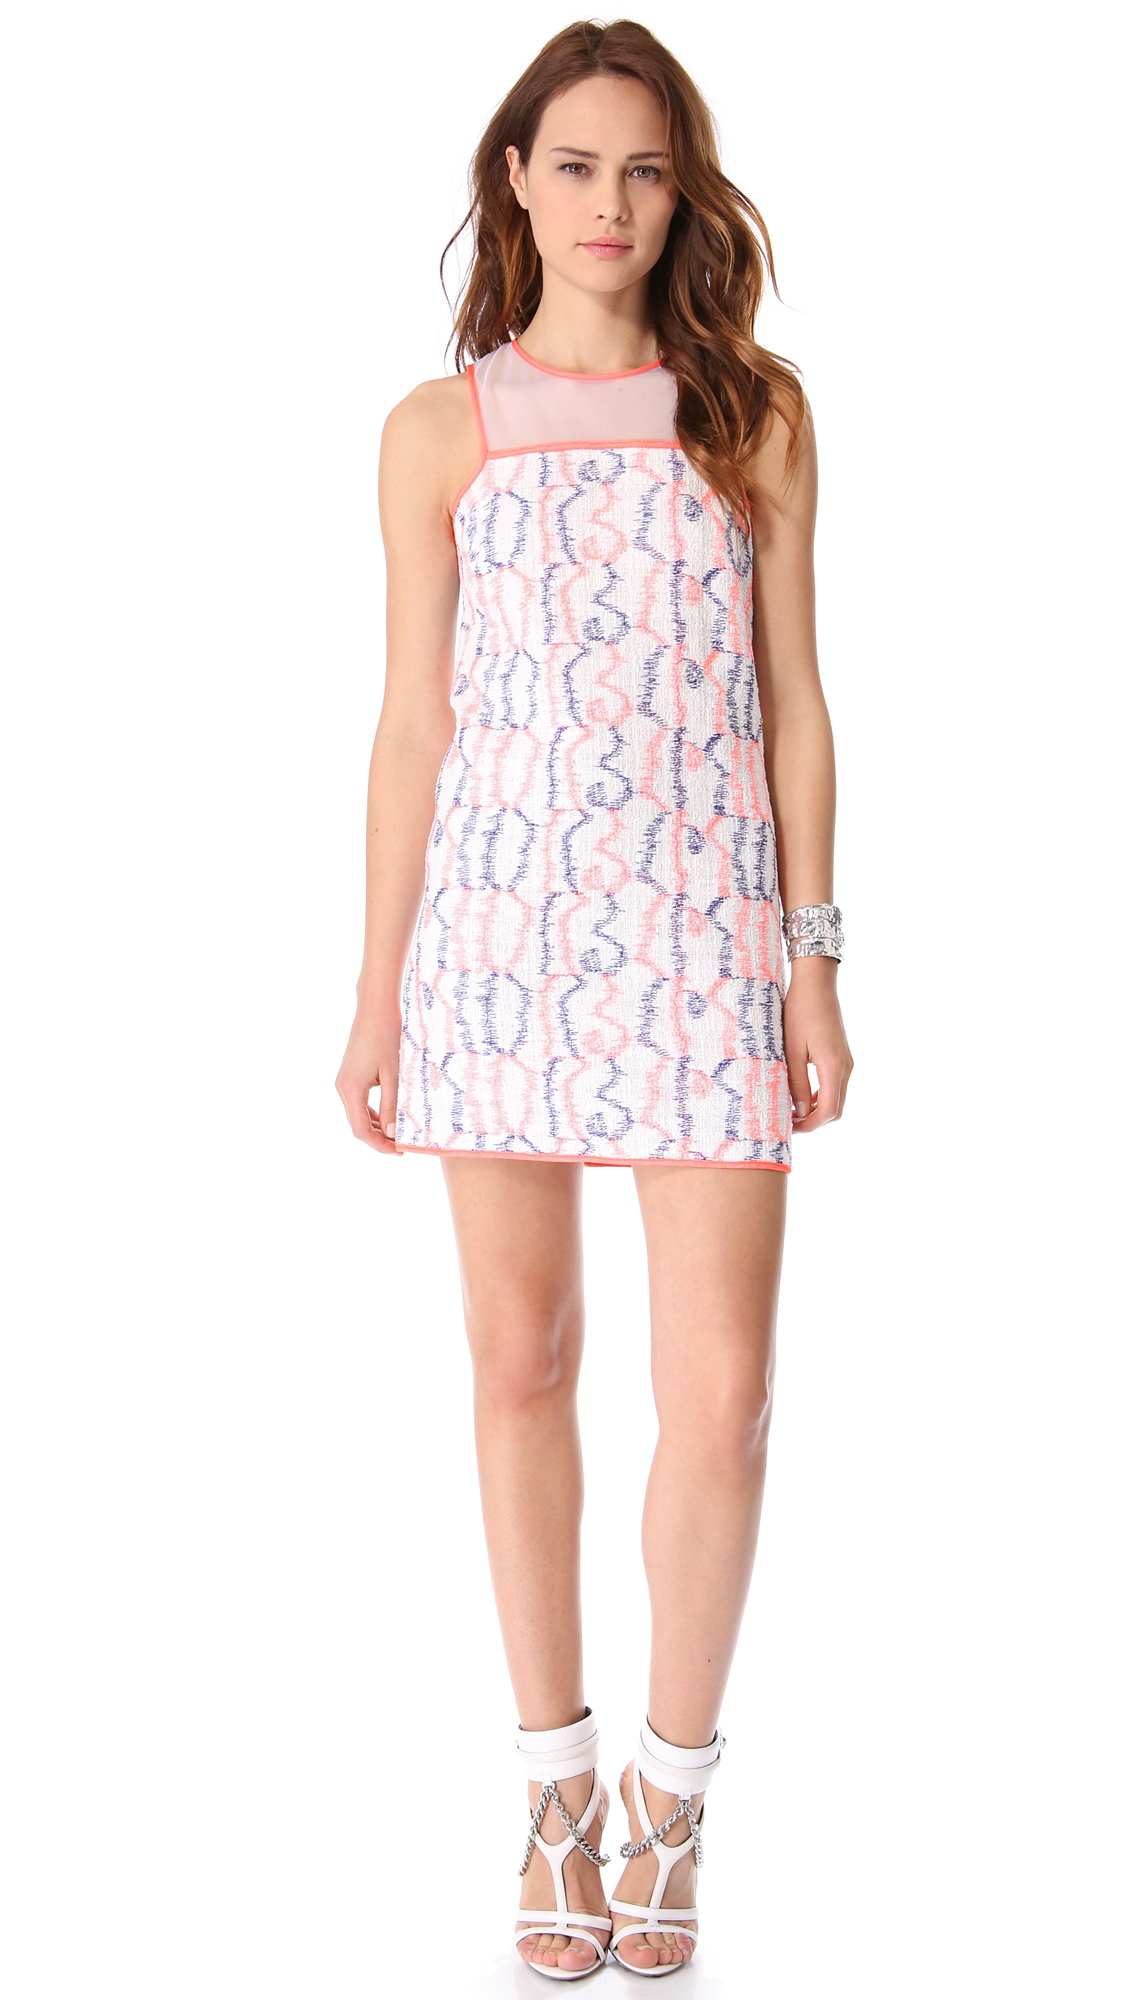 Lyst - Milly Avery Shift Dress d5ef0ed5f